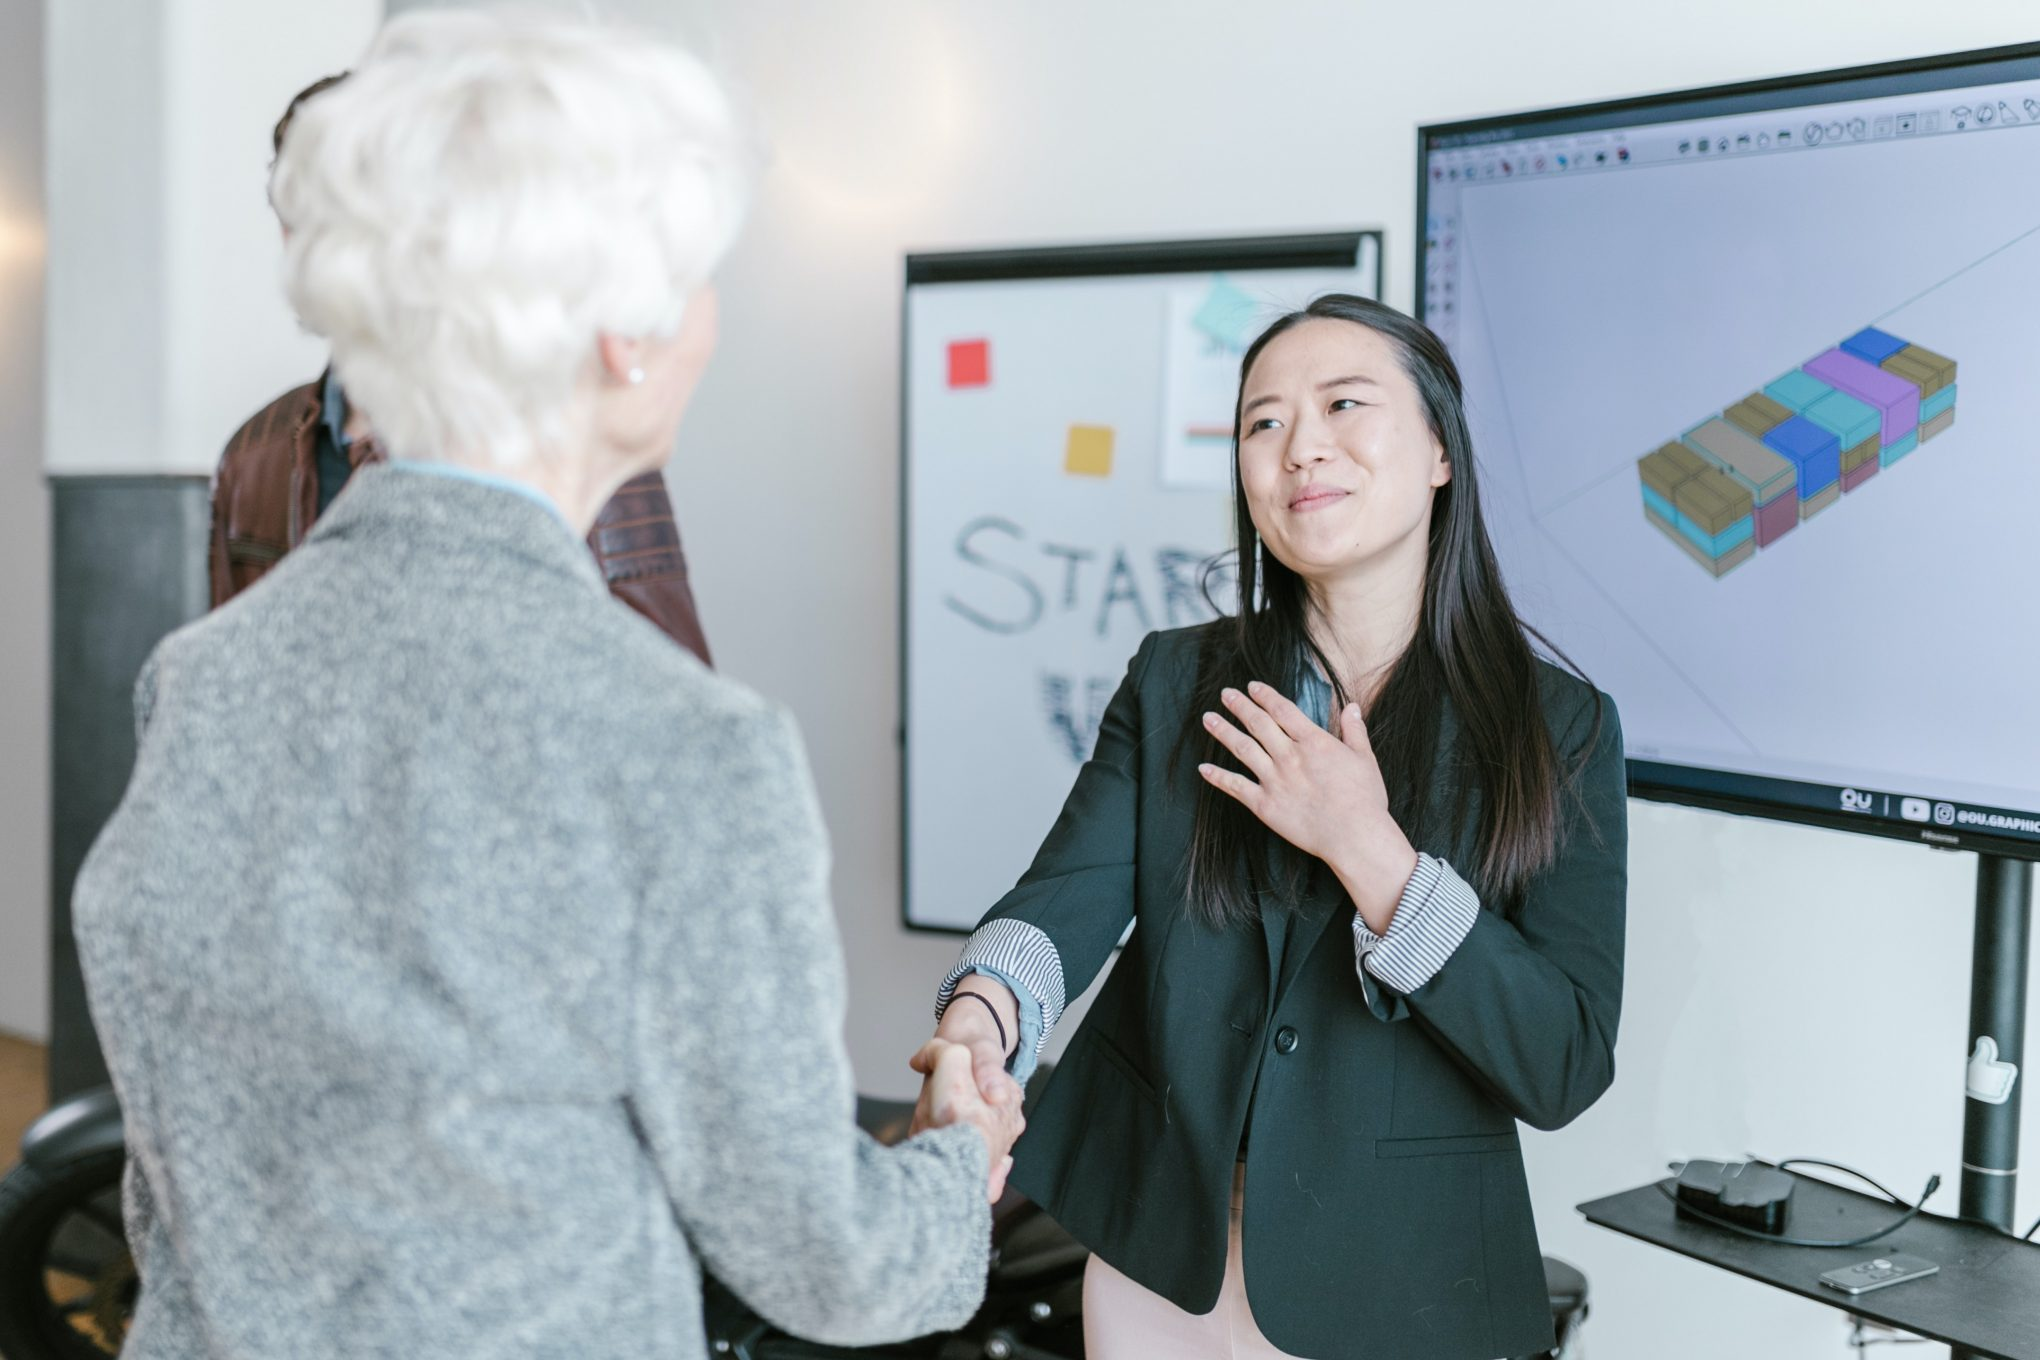 Asian woman shaking hands with elderly white woman